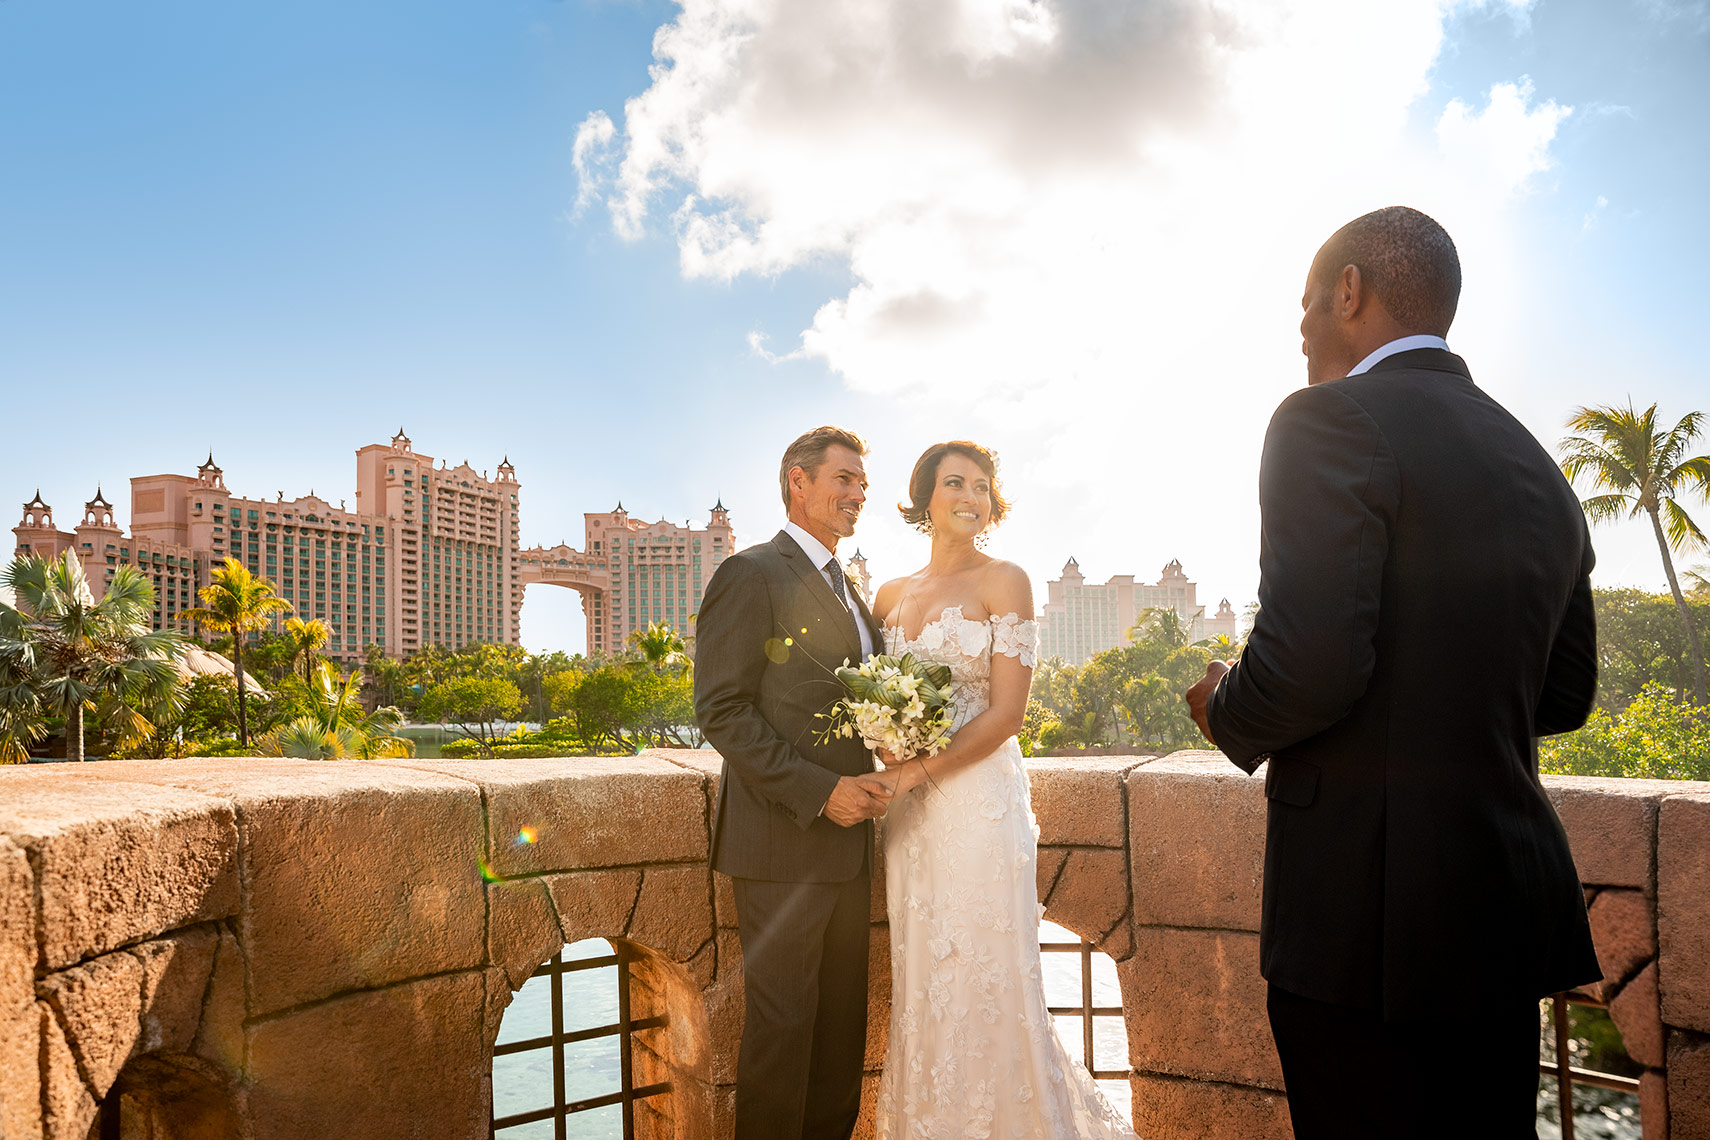 intimate small wedding ceremony at Atlantis Paradise Island destination wedding ideas in the bahamas